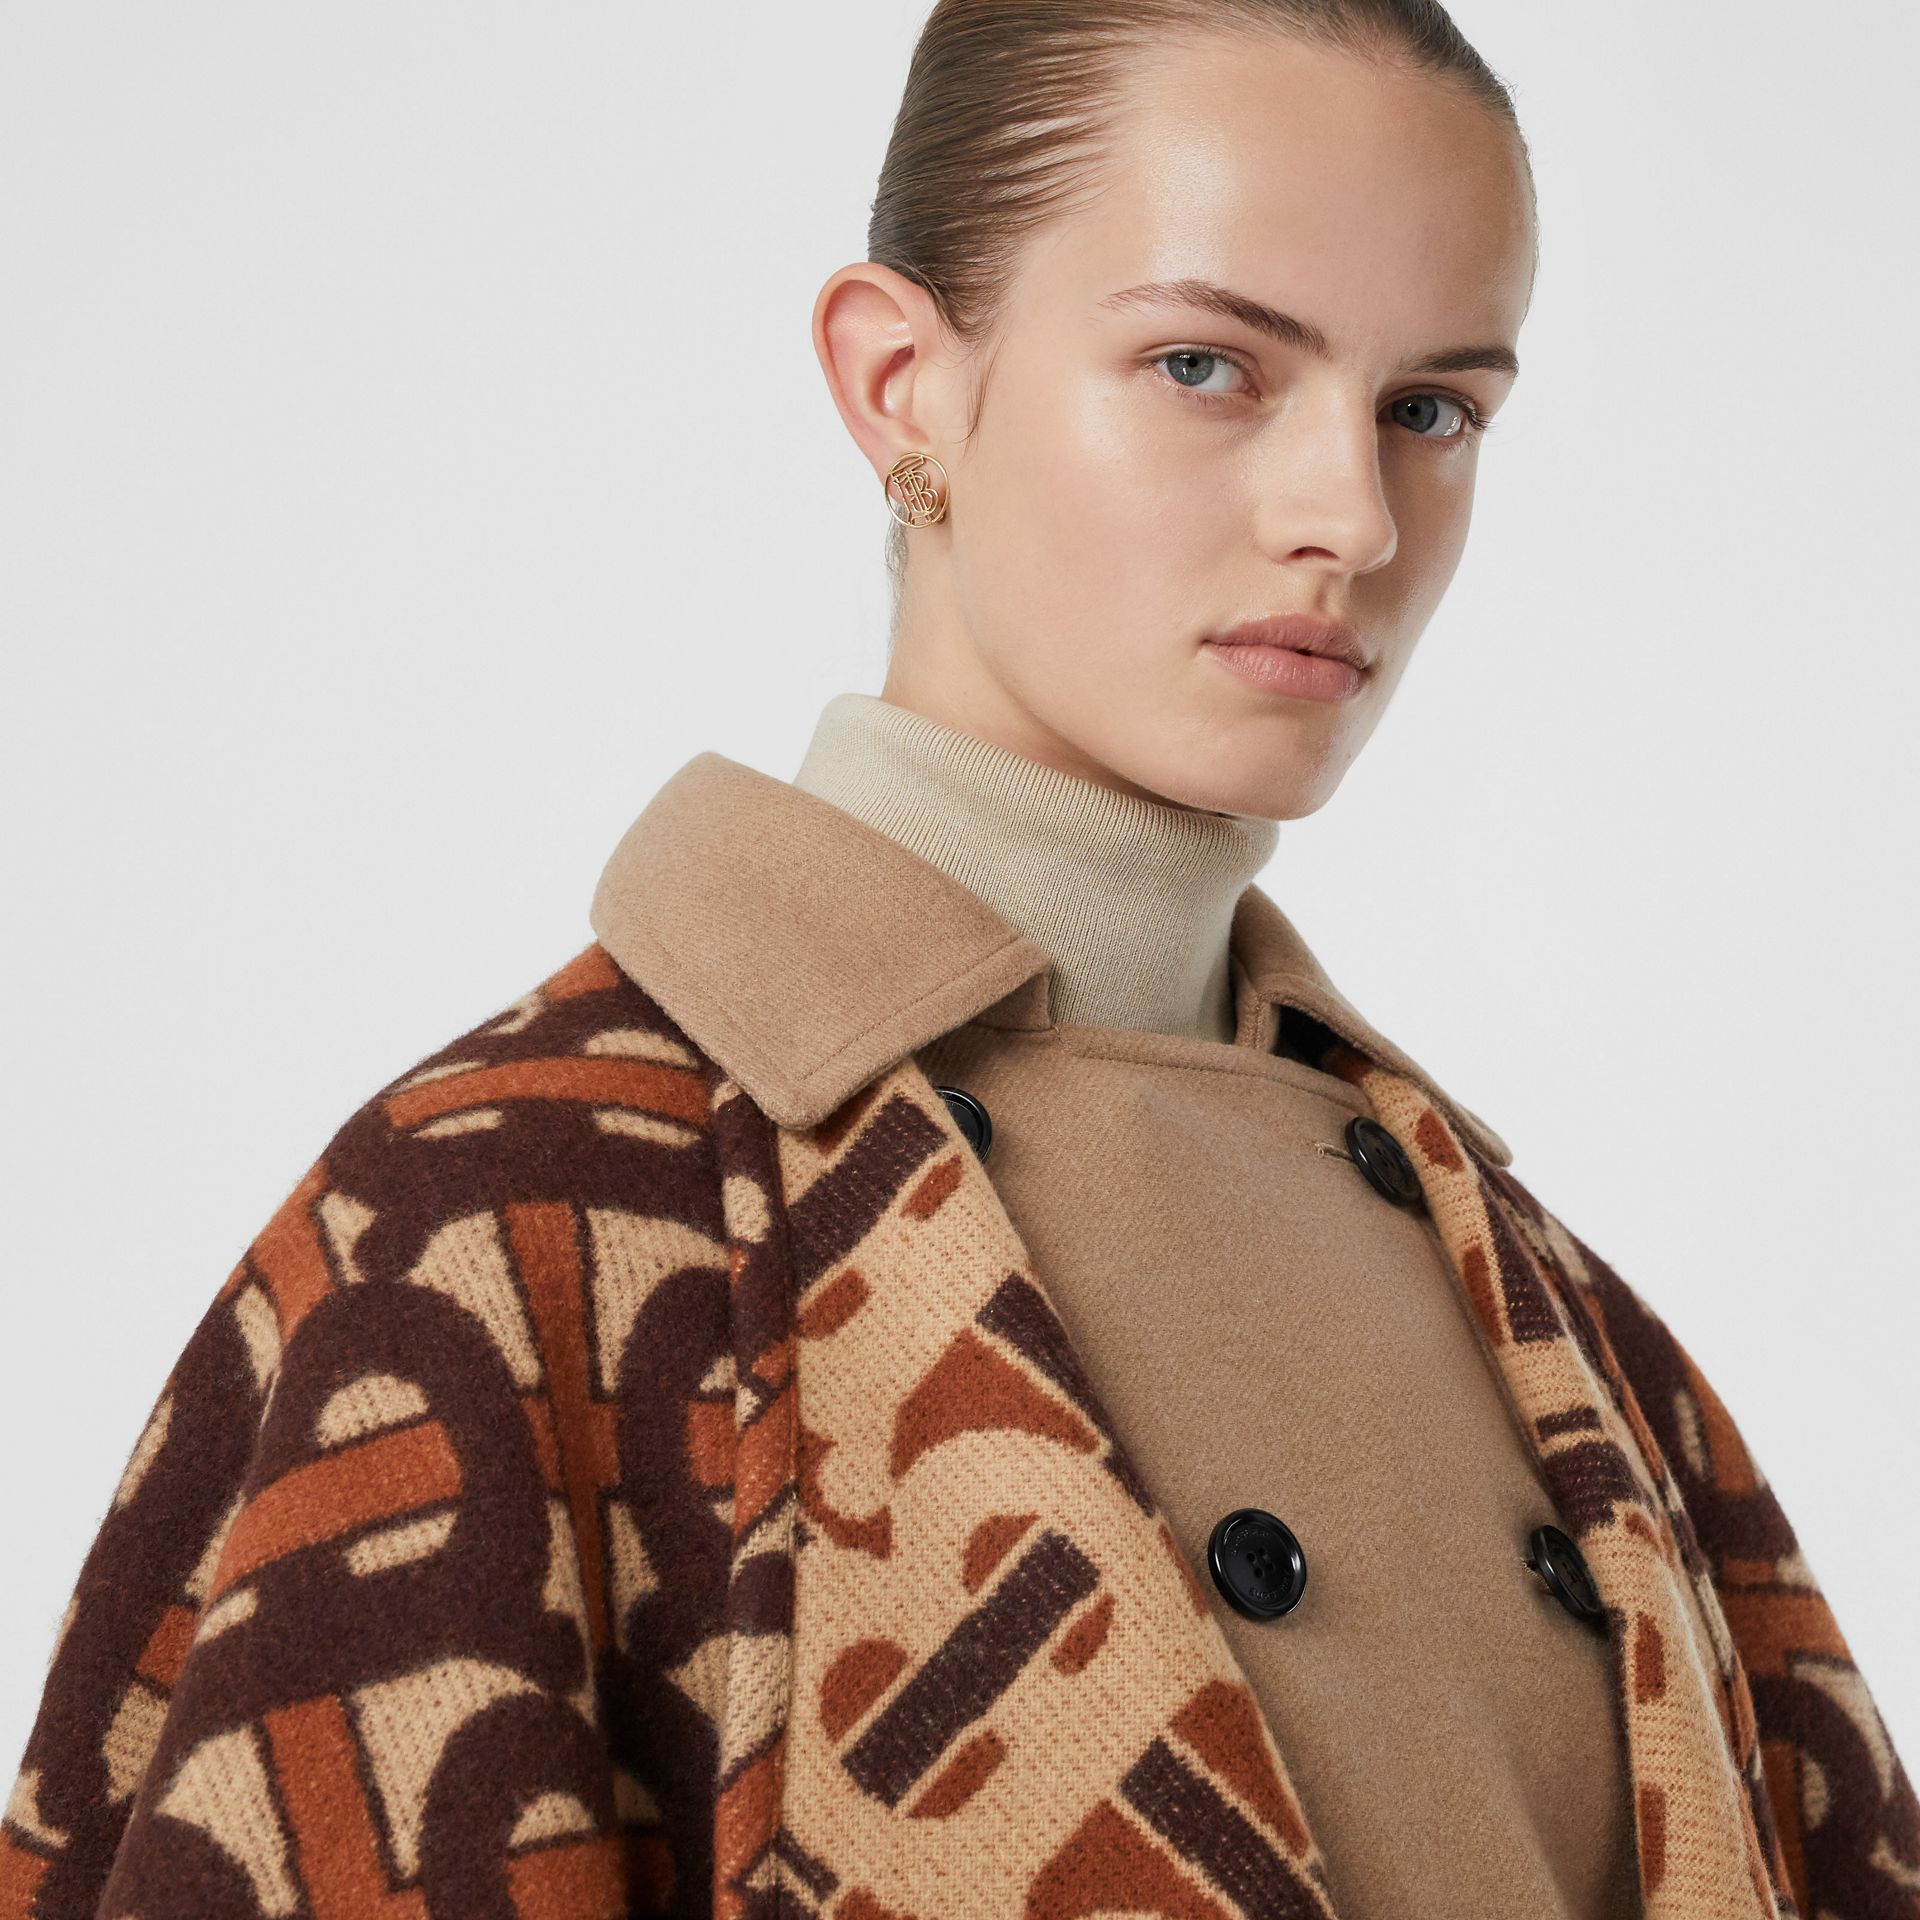 Monogram Merino Wool Cashmere Jacquard Cape in Dark Mocha - Women | Burberry Hong Kong S.A.R - gallery image 1